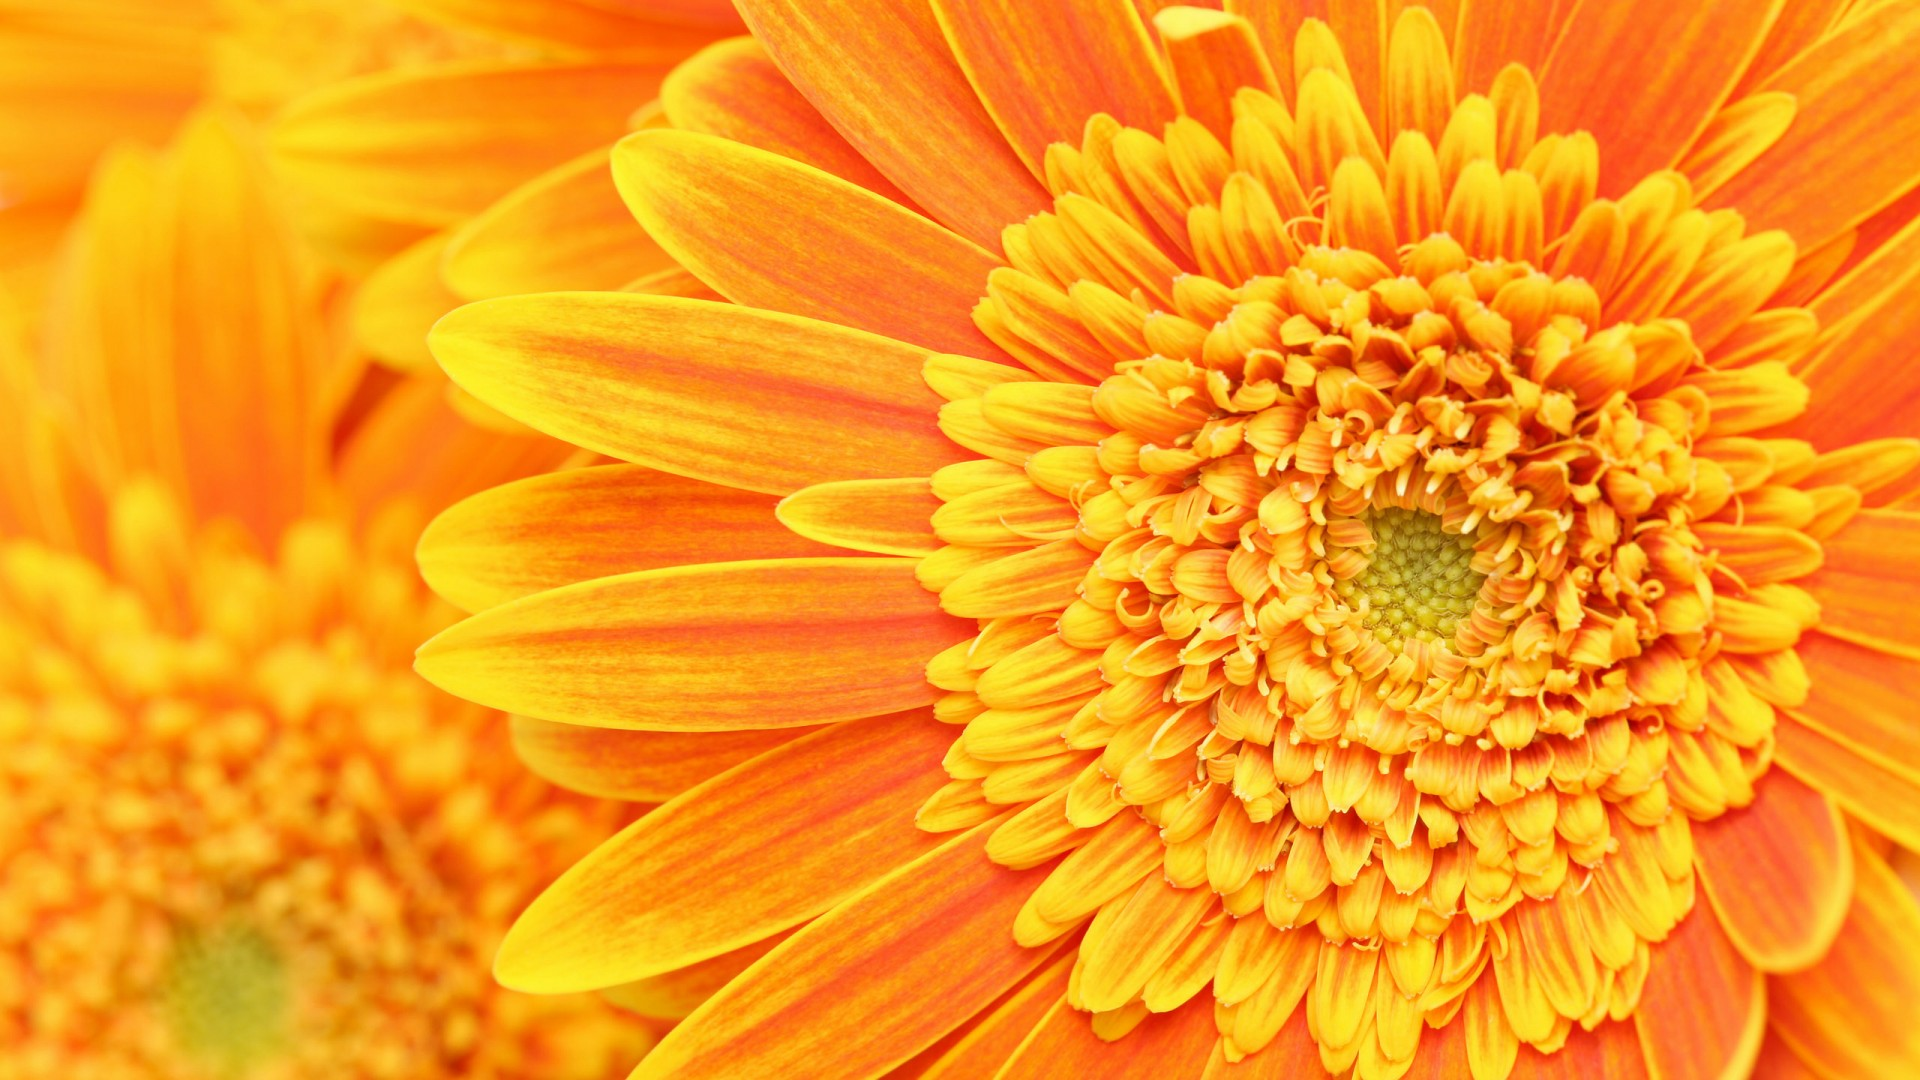 Background Beauty Floral Flower Fresh Nature Orange desktop wallpapers 1920x1080